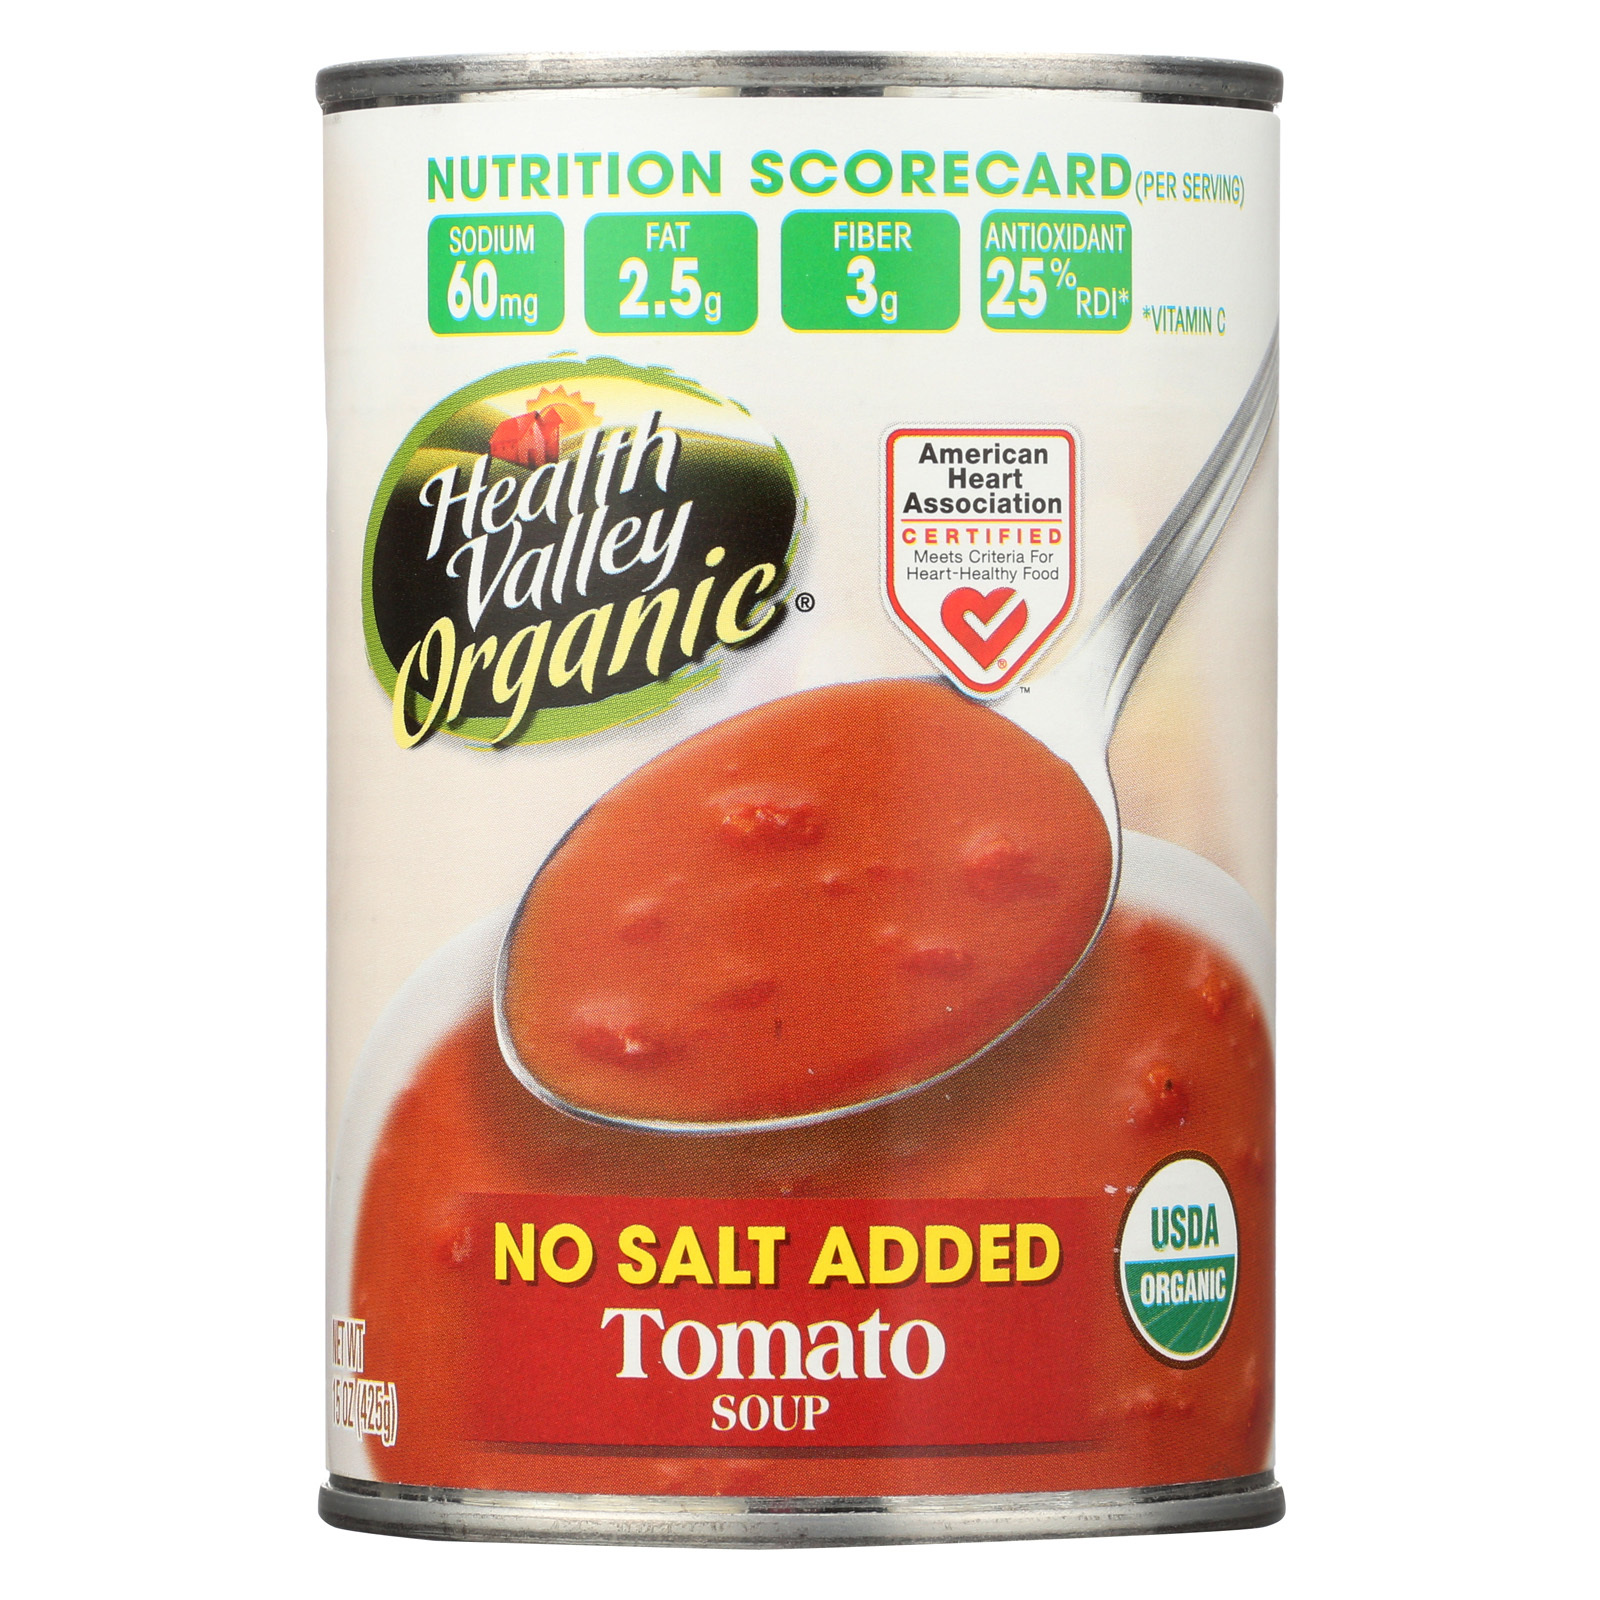 Health Valley Organic Soup - Tomato, No Salt Added - Case of 12 - 15 oz.